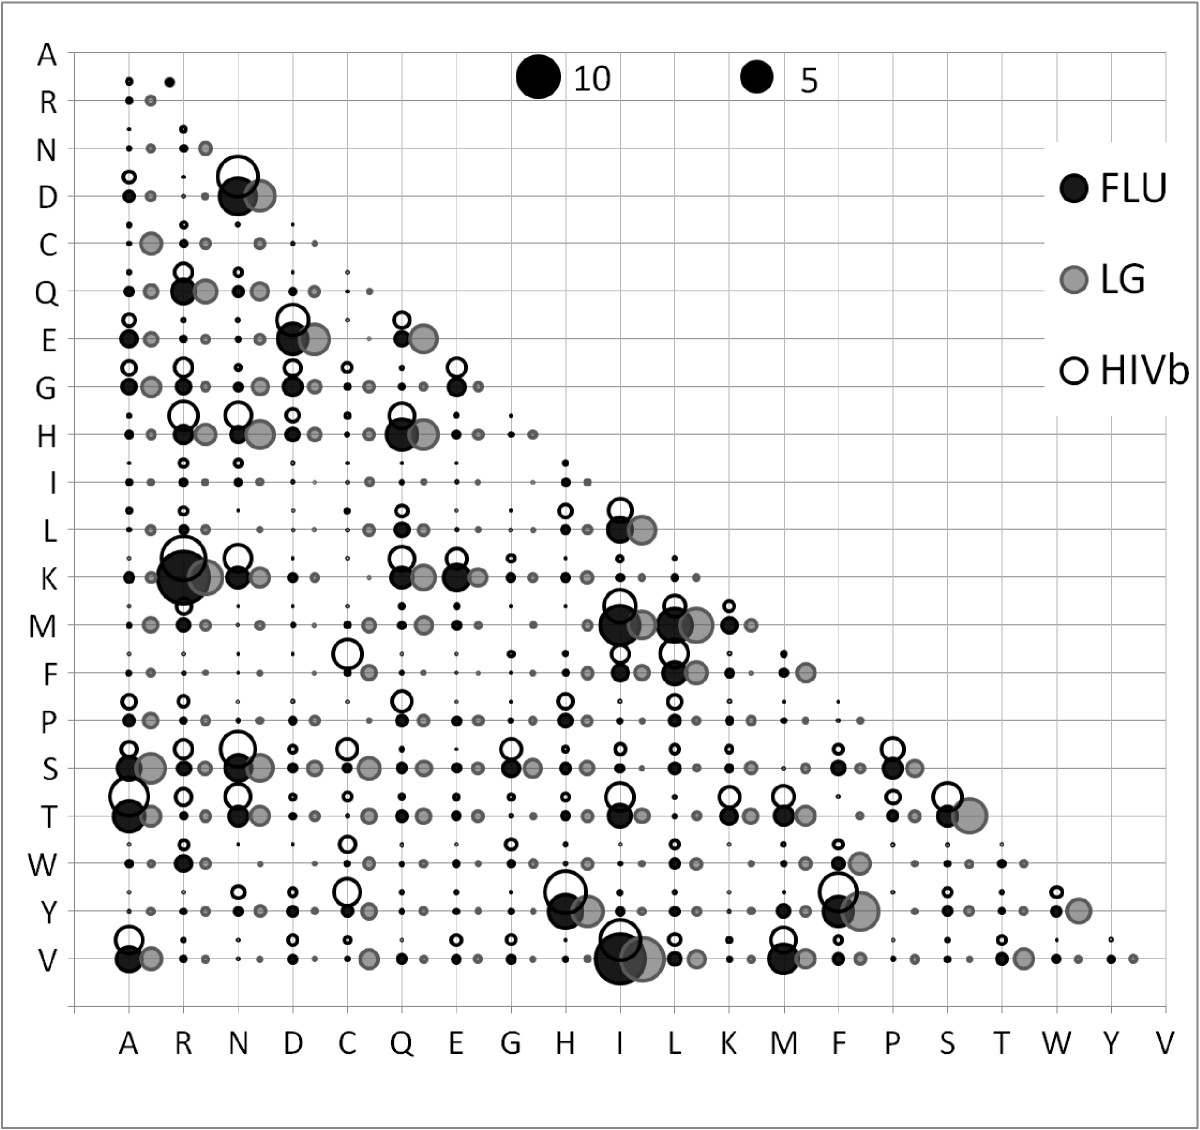 http://static-content.springer.com/image/art%3A10.1186%2F1471-2148-10-99/MediaObjects/12862_2009_Article_1315_Fig2_HTML.jpg